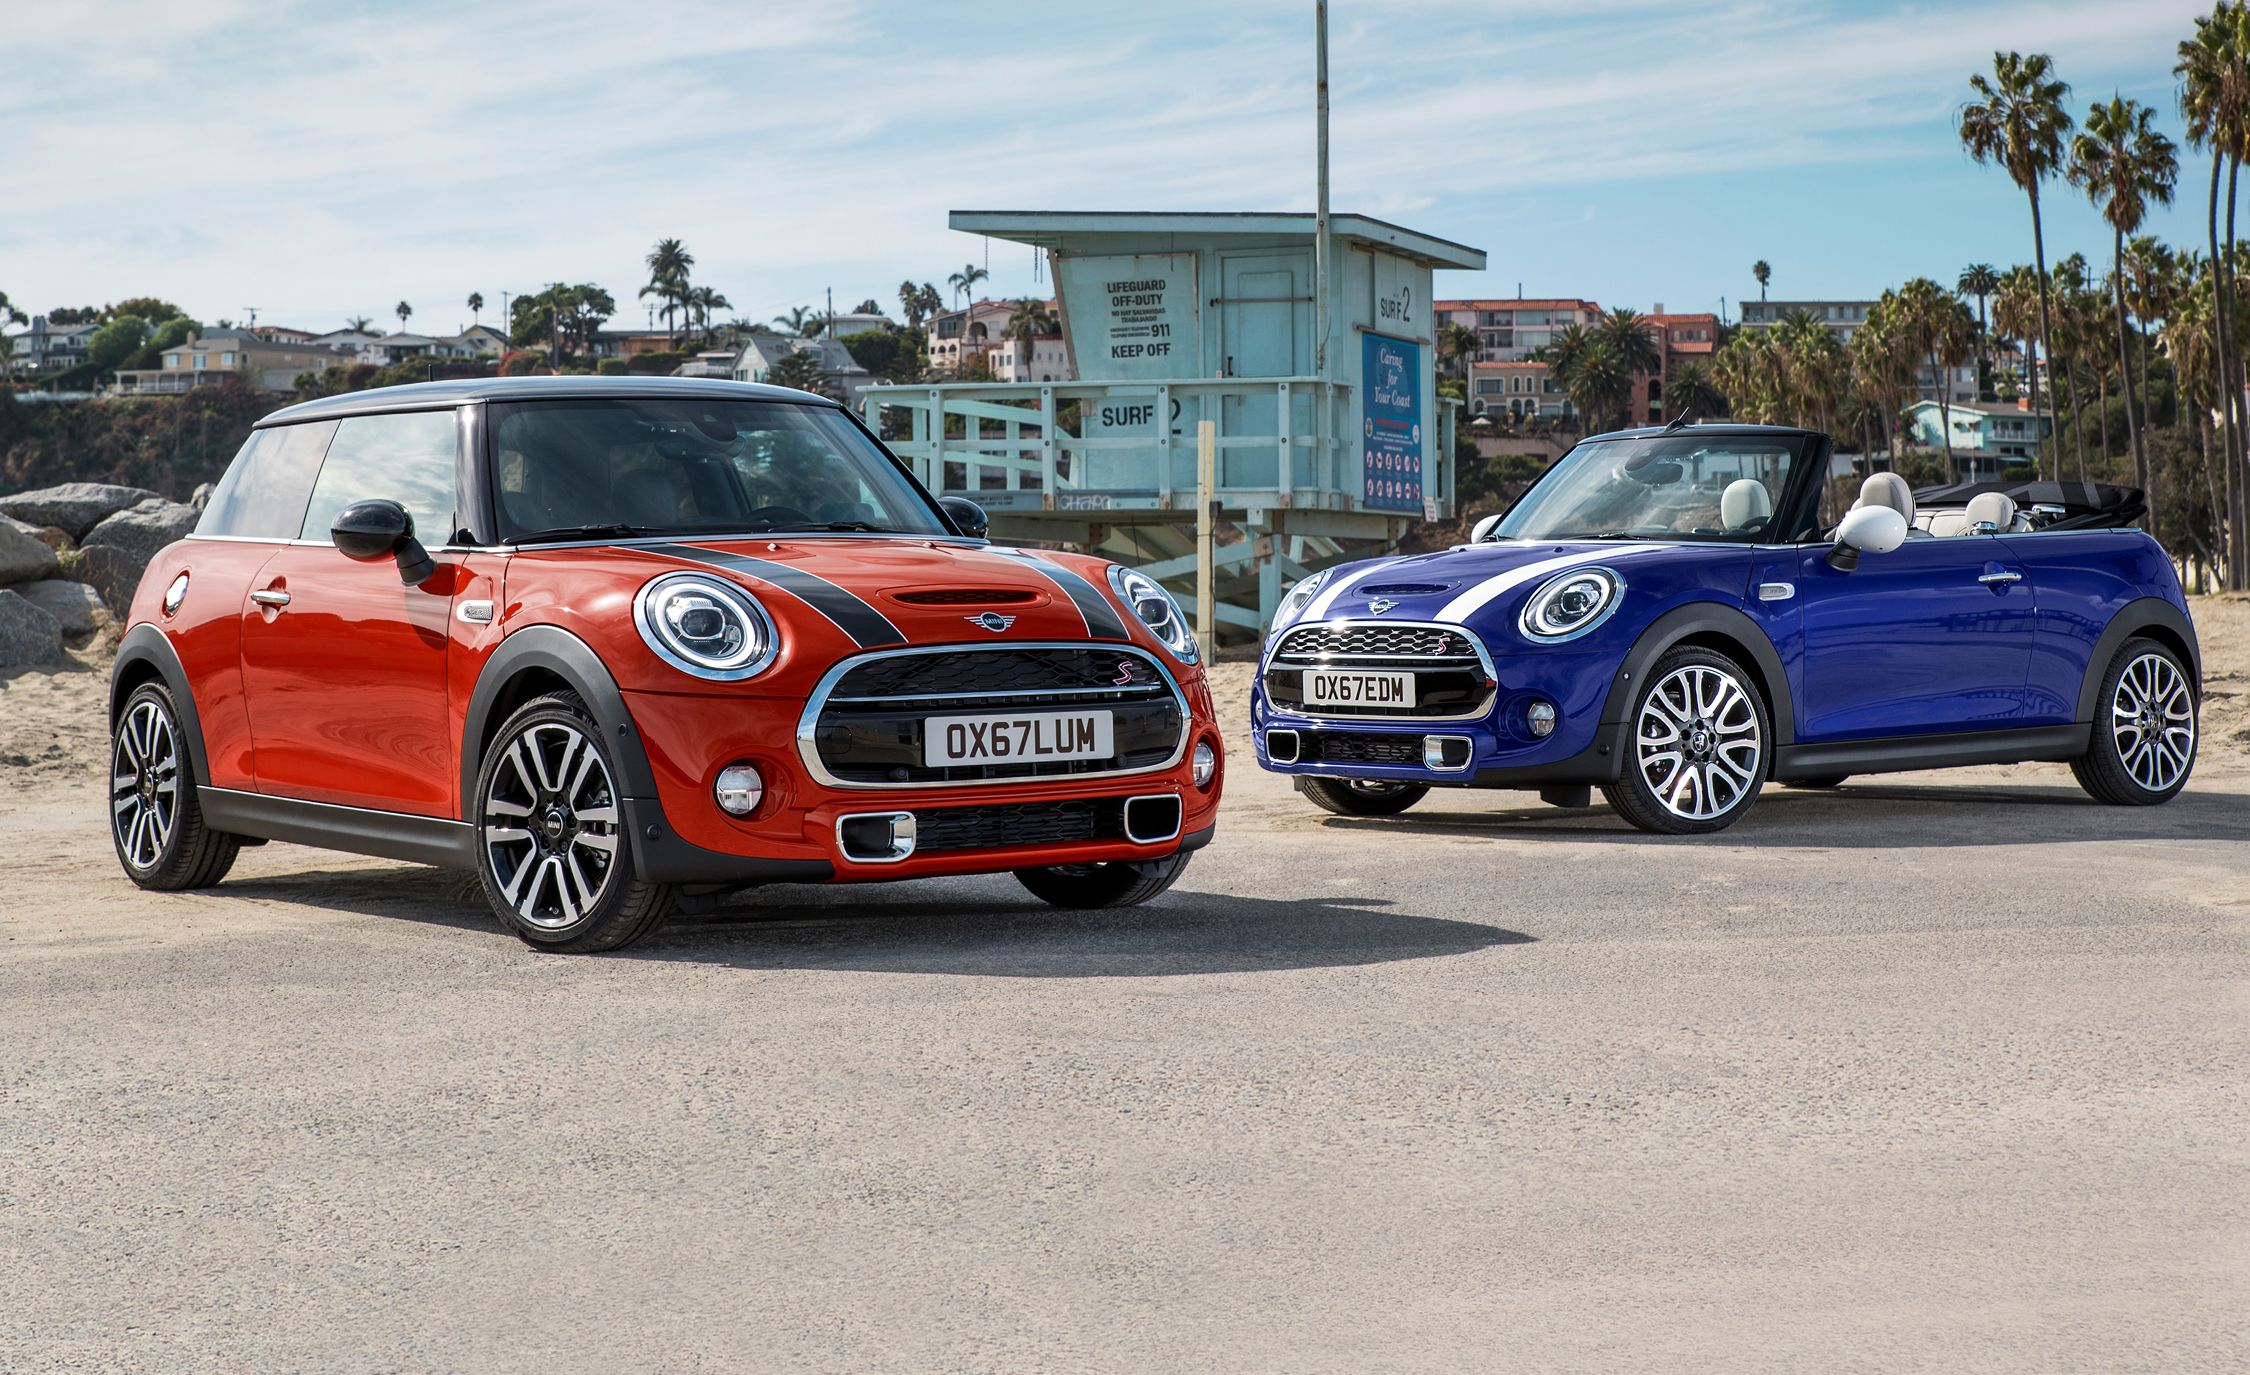 2019 Mini Hardtop And Convertible Get Stylistic Updates News Car